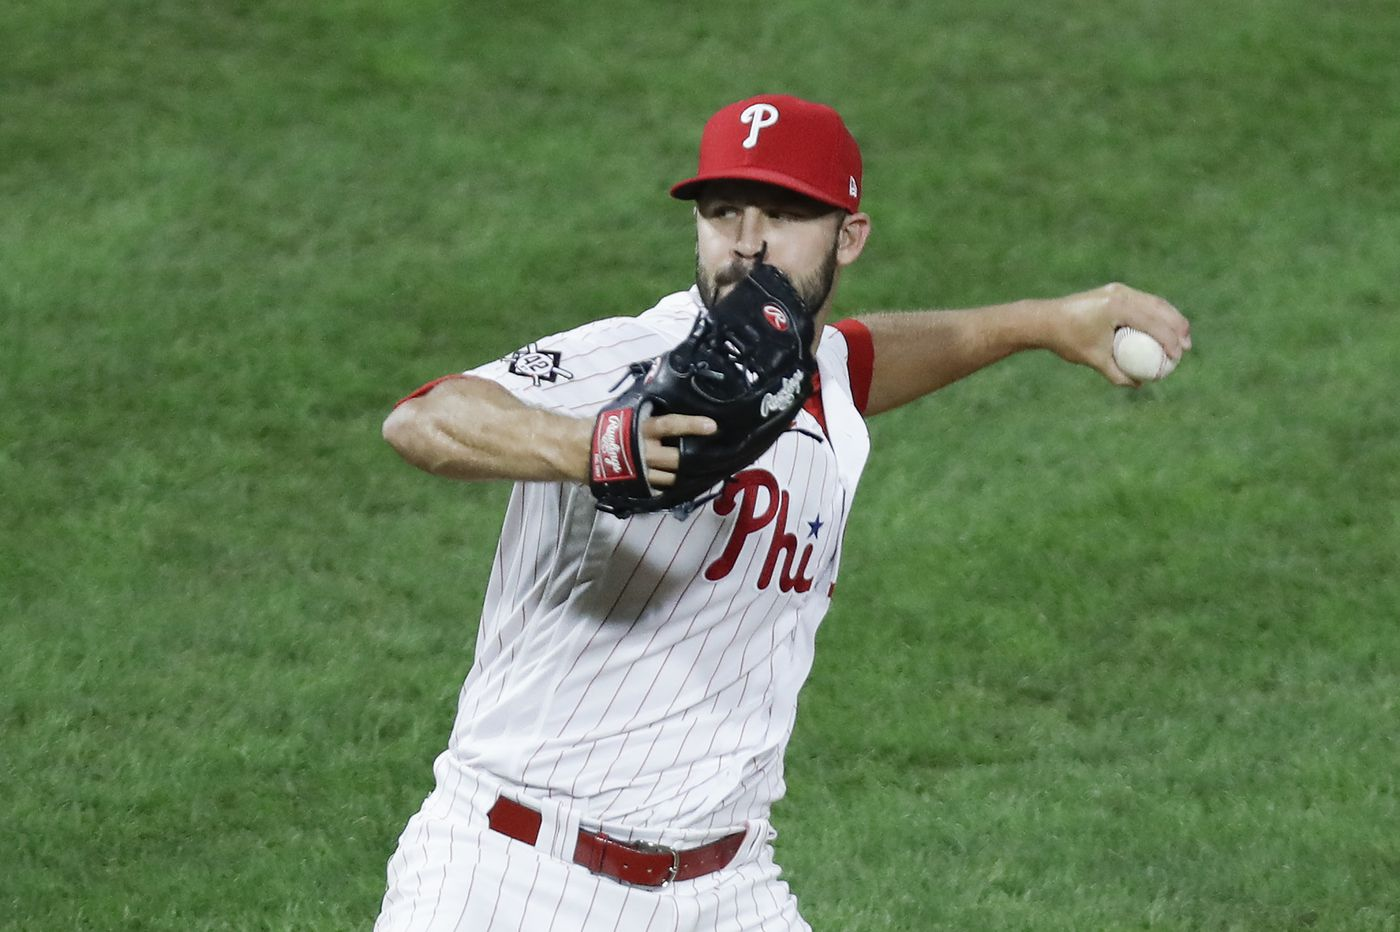 Phillies' Adam Morgan undergoes elbow surgery, likely to miss the start of the 2021 season